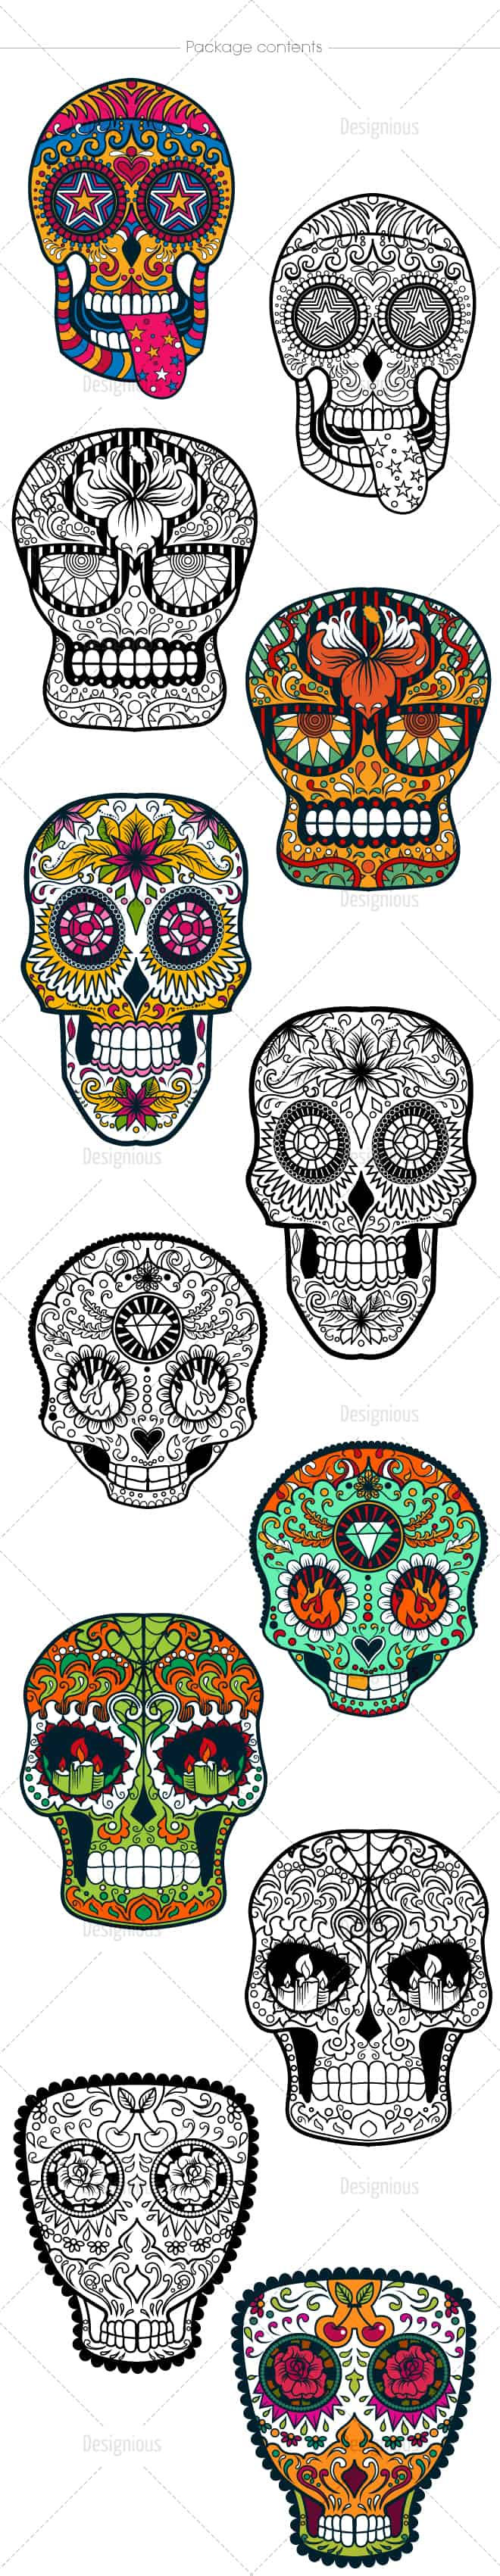 Sugar Skulls Vector Pack 39 designious vector sugar skulls 39 large